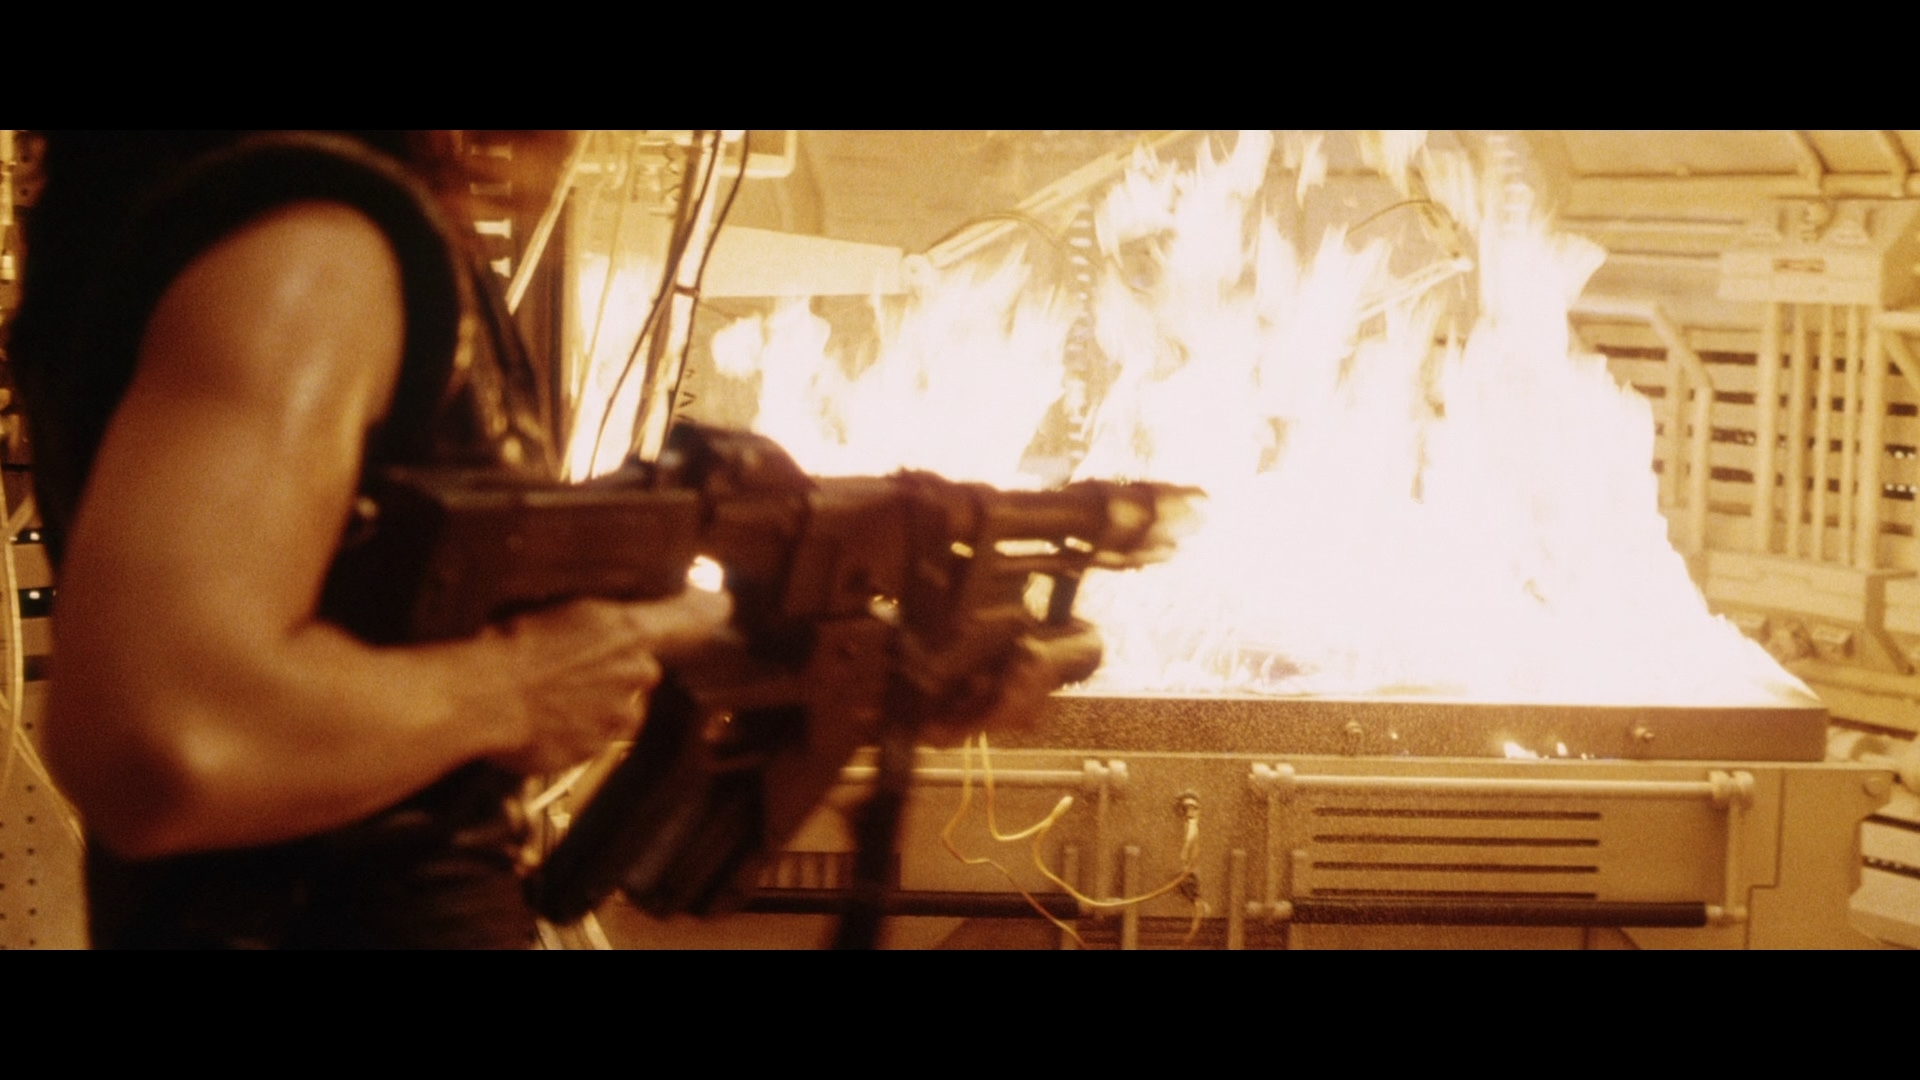 ALIEN RESURRECTION (1997) - Light-Up AR-2 Rifle - Image 16 of 19